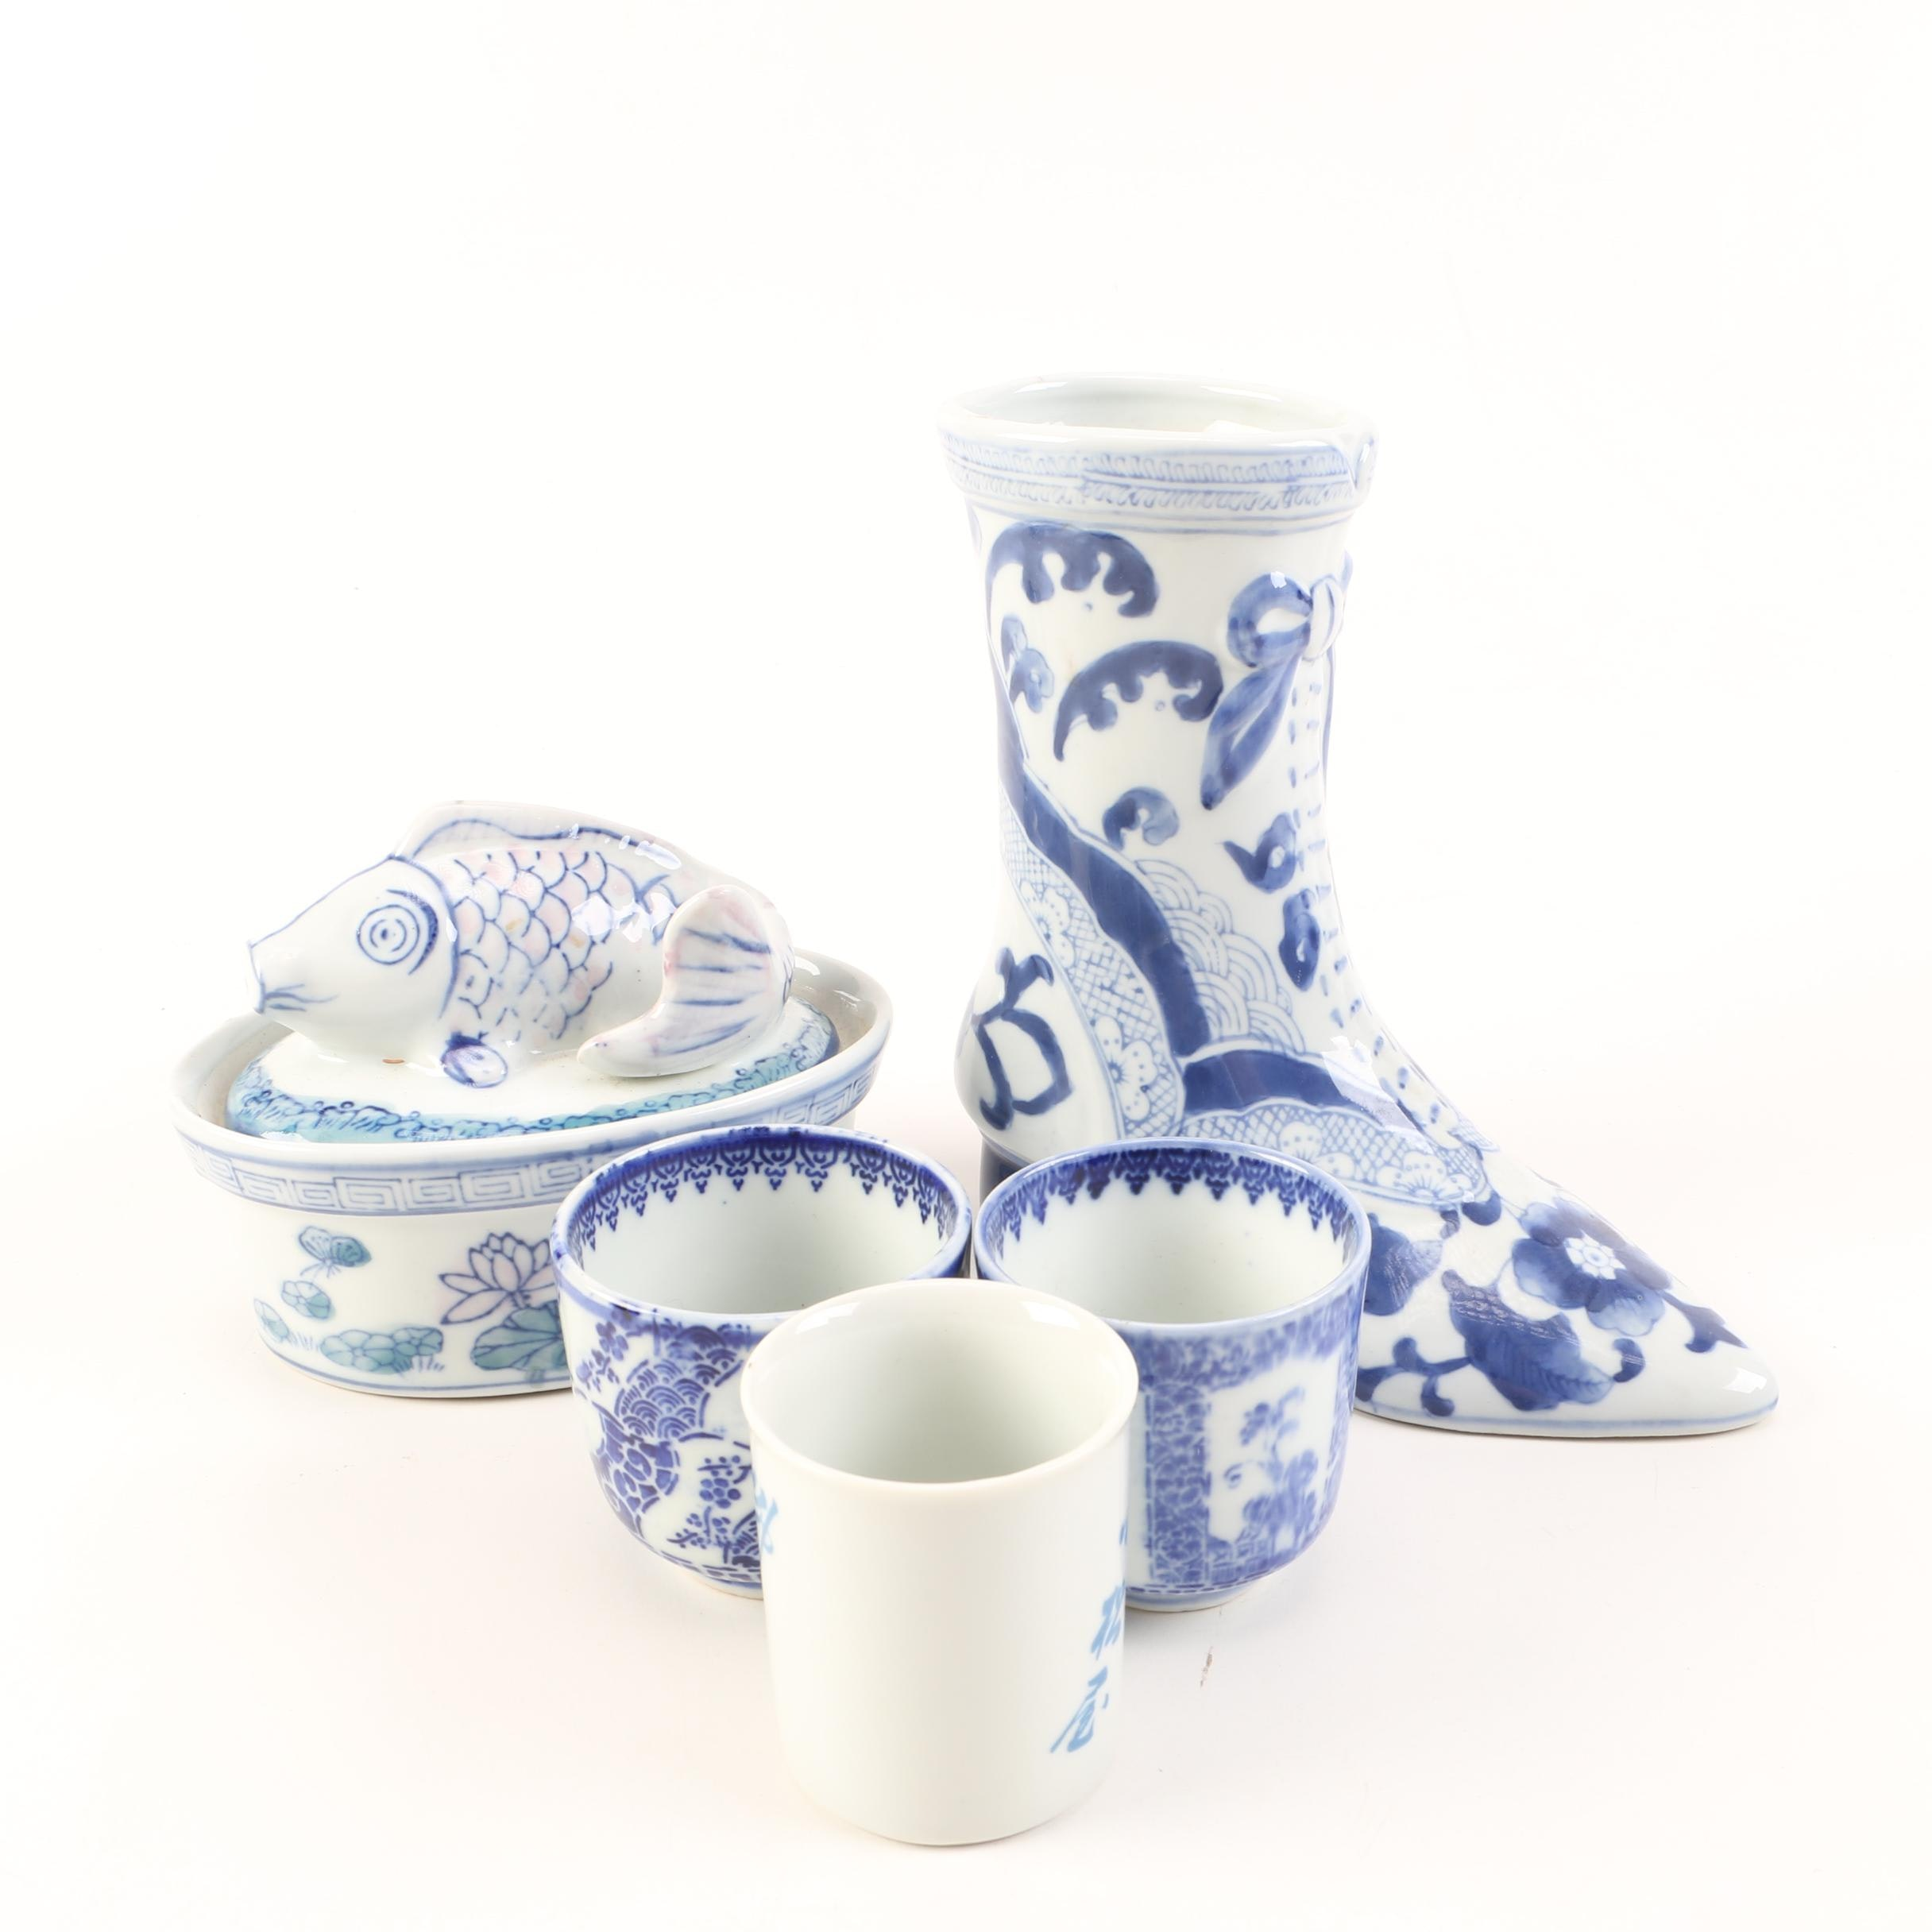 Chinese White and Blue Decorative Cups and Bowls